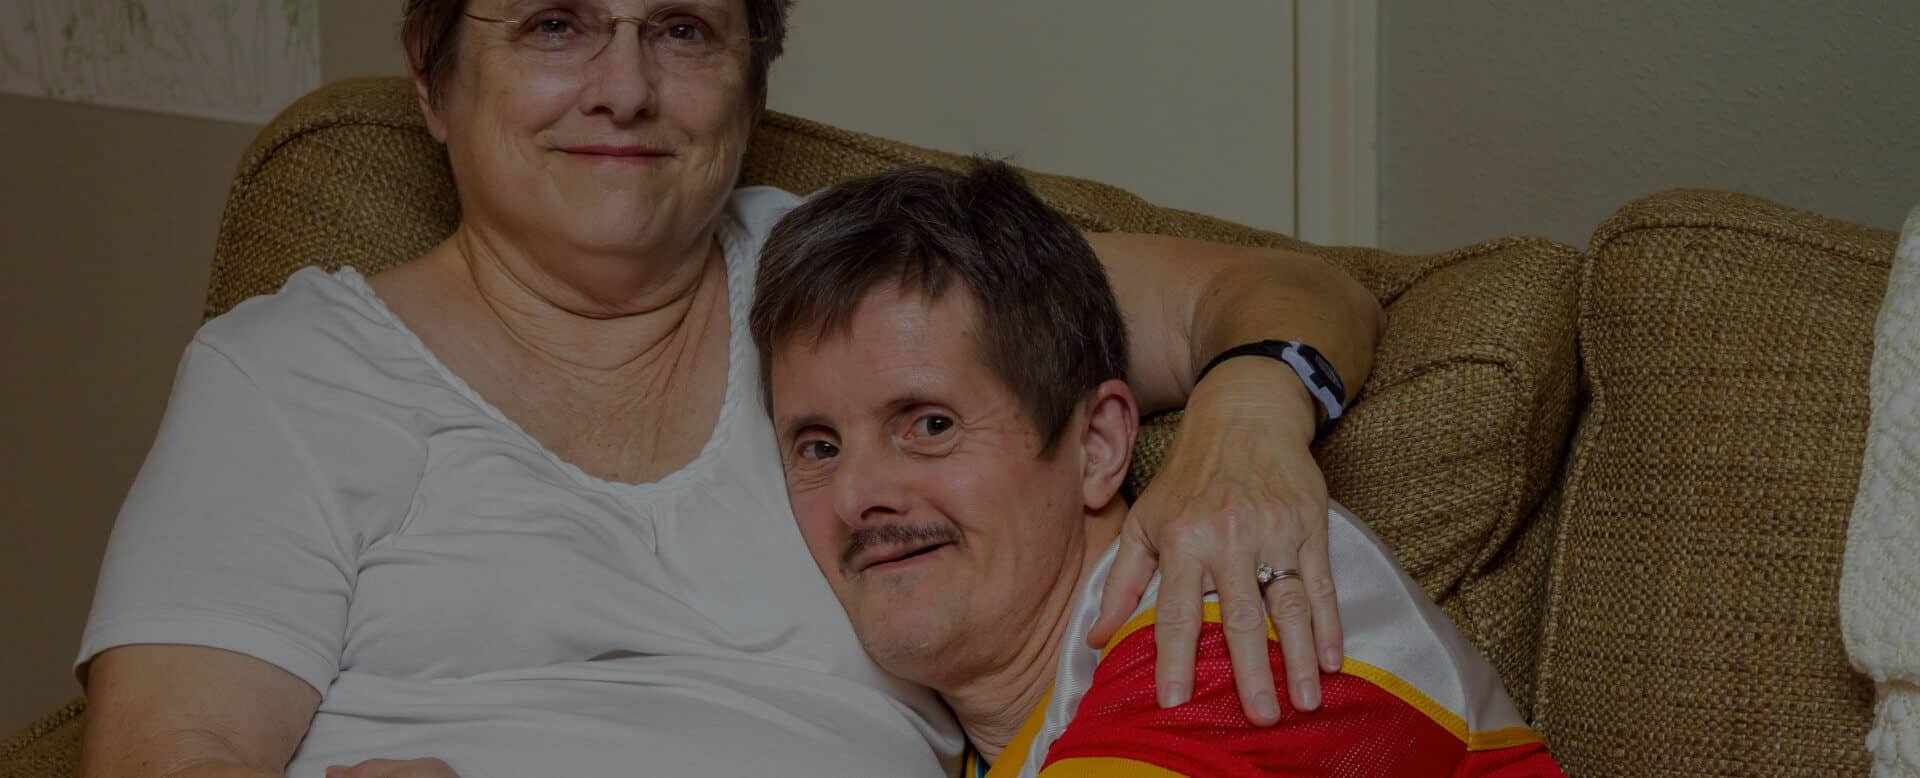 An older men with Downs Syndrome, hugs his older sister